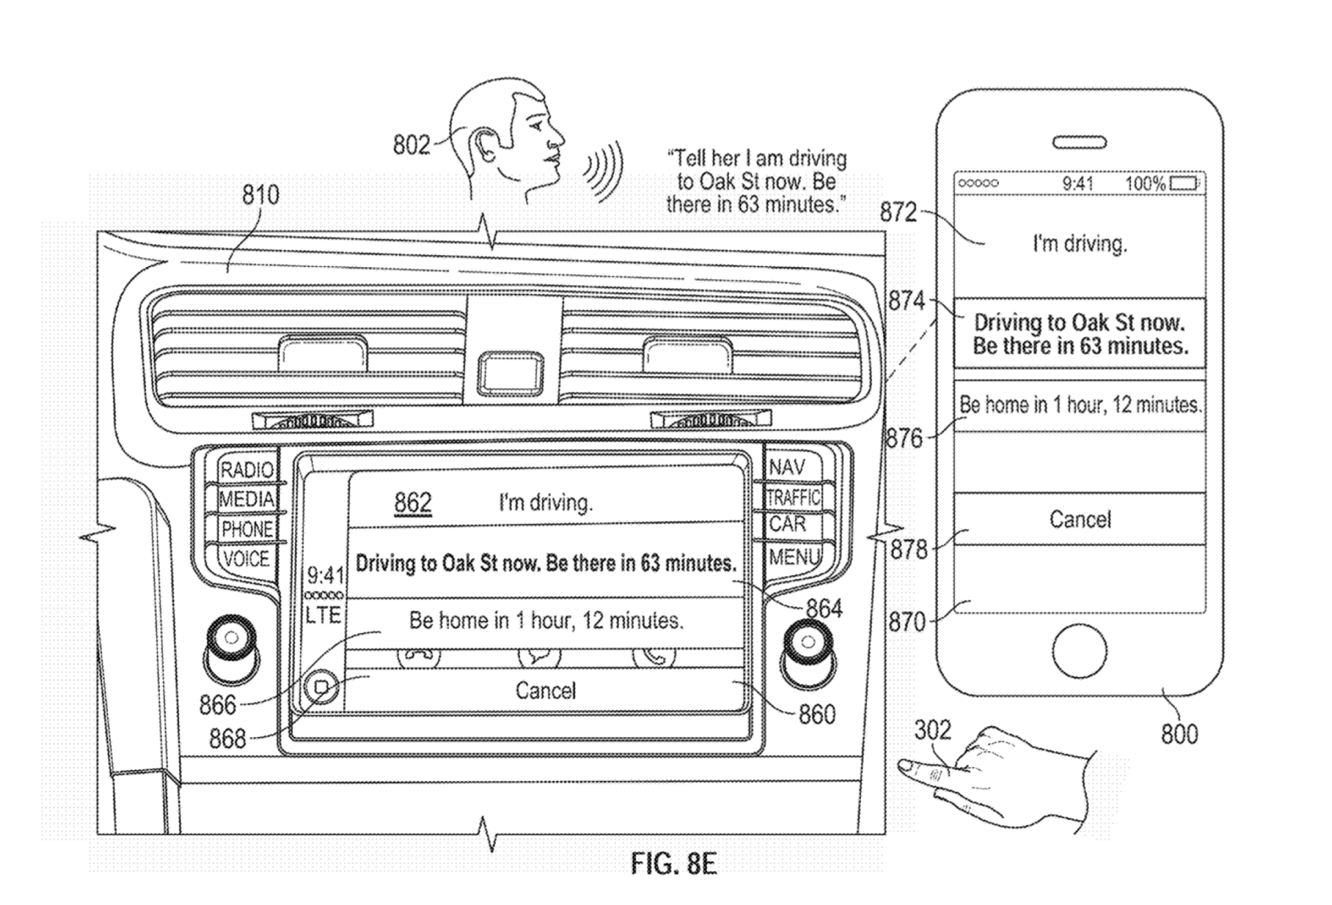 New Apple patent suggests enhancements to 'Do Not Disturb' on iOS